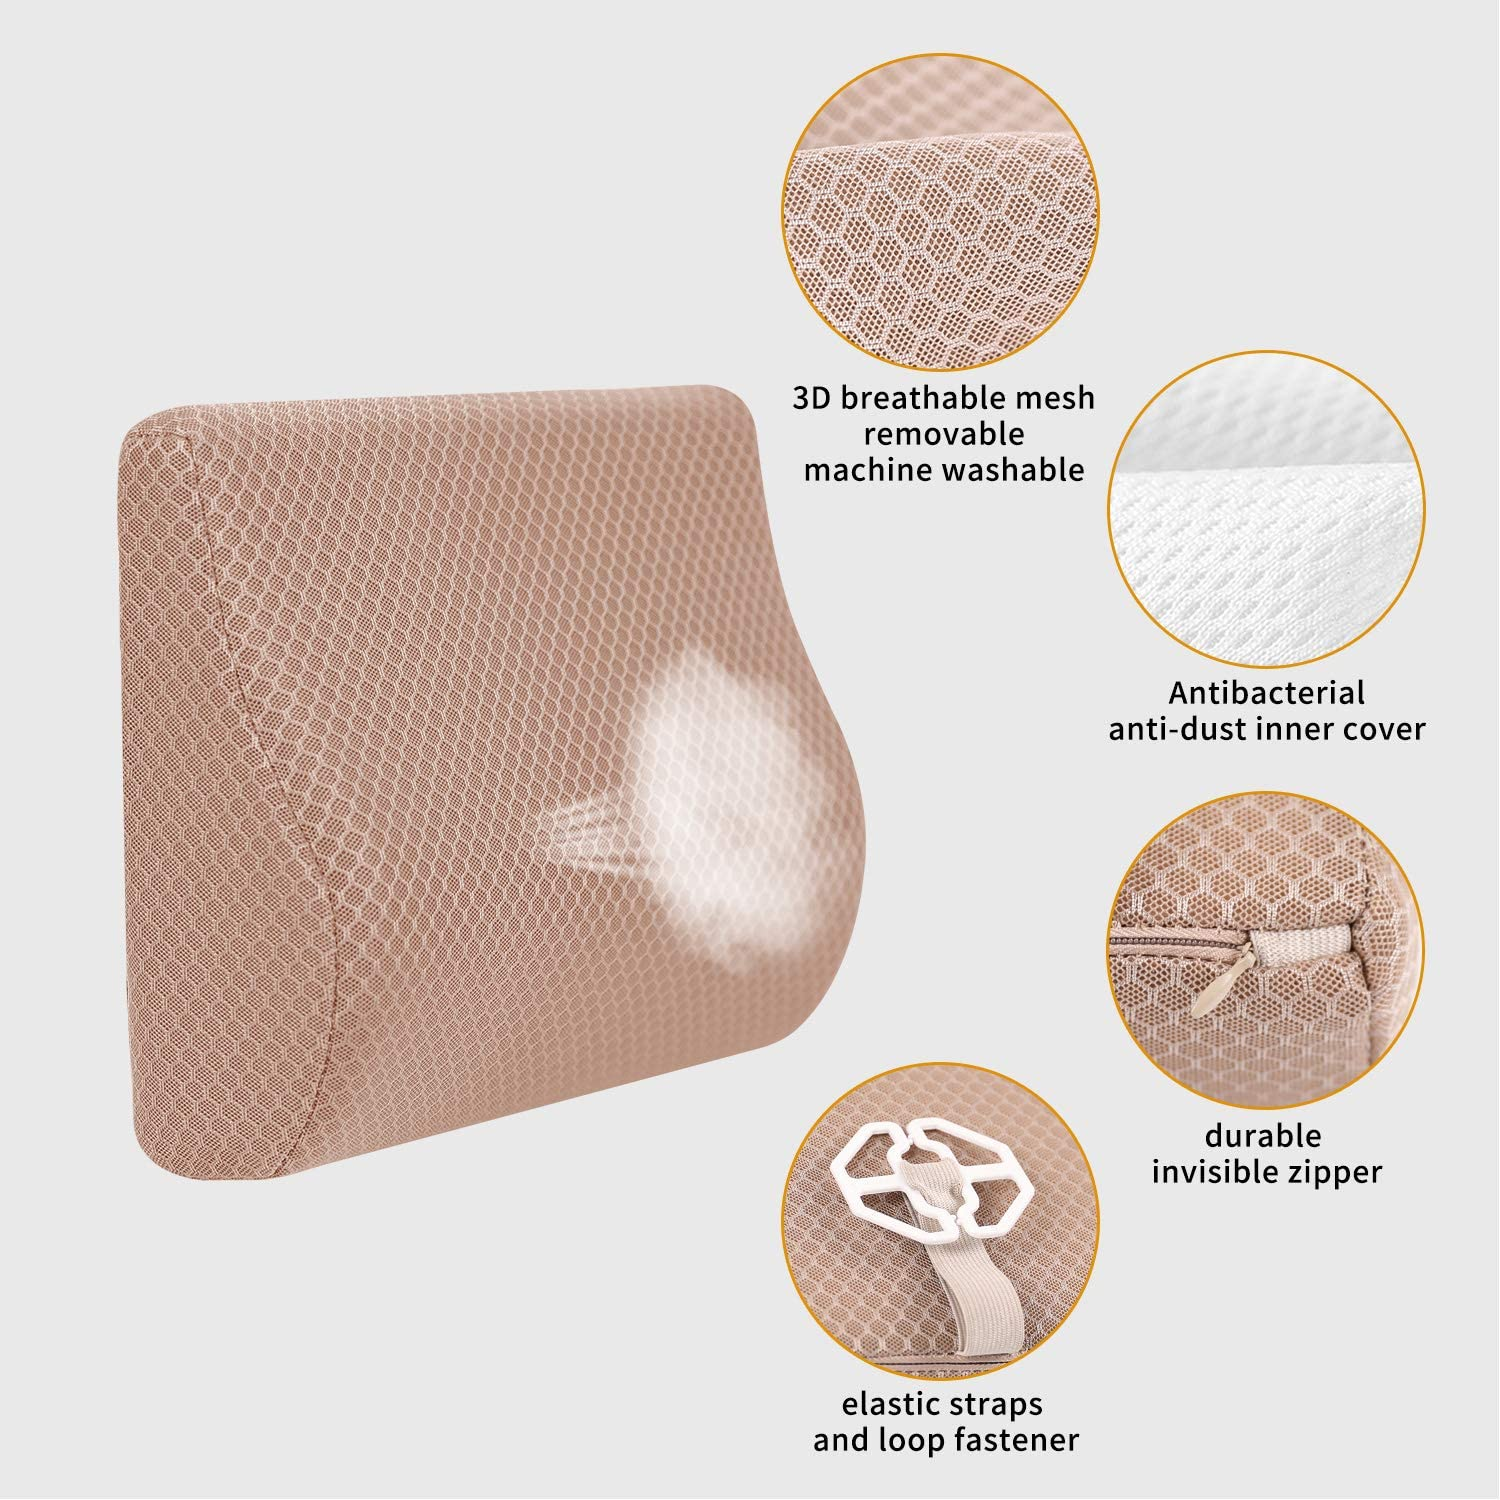 Recliner Etc. TISHIJIE Memory Foam Lumbar Support for Car for Car Seat Beige Office Chair Designed for Mid//Lower Back Pain Relief While Driving